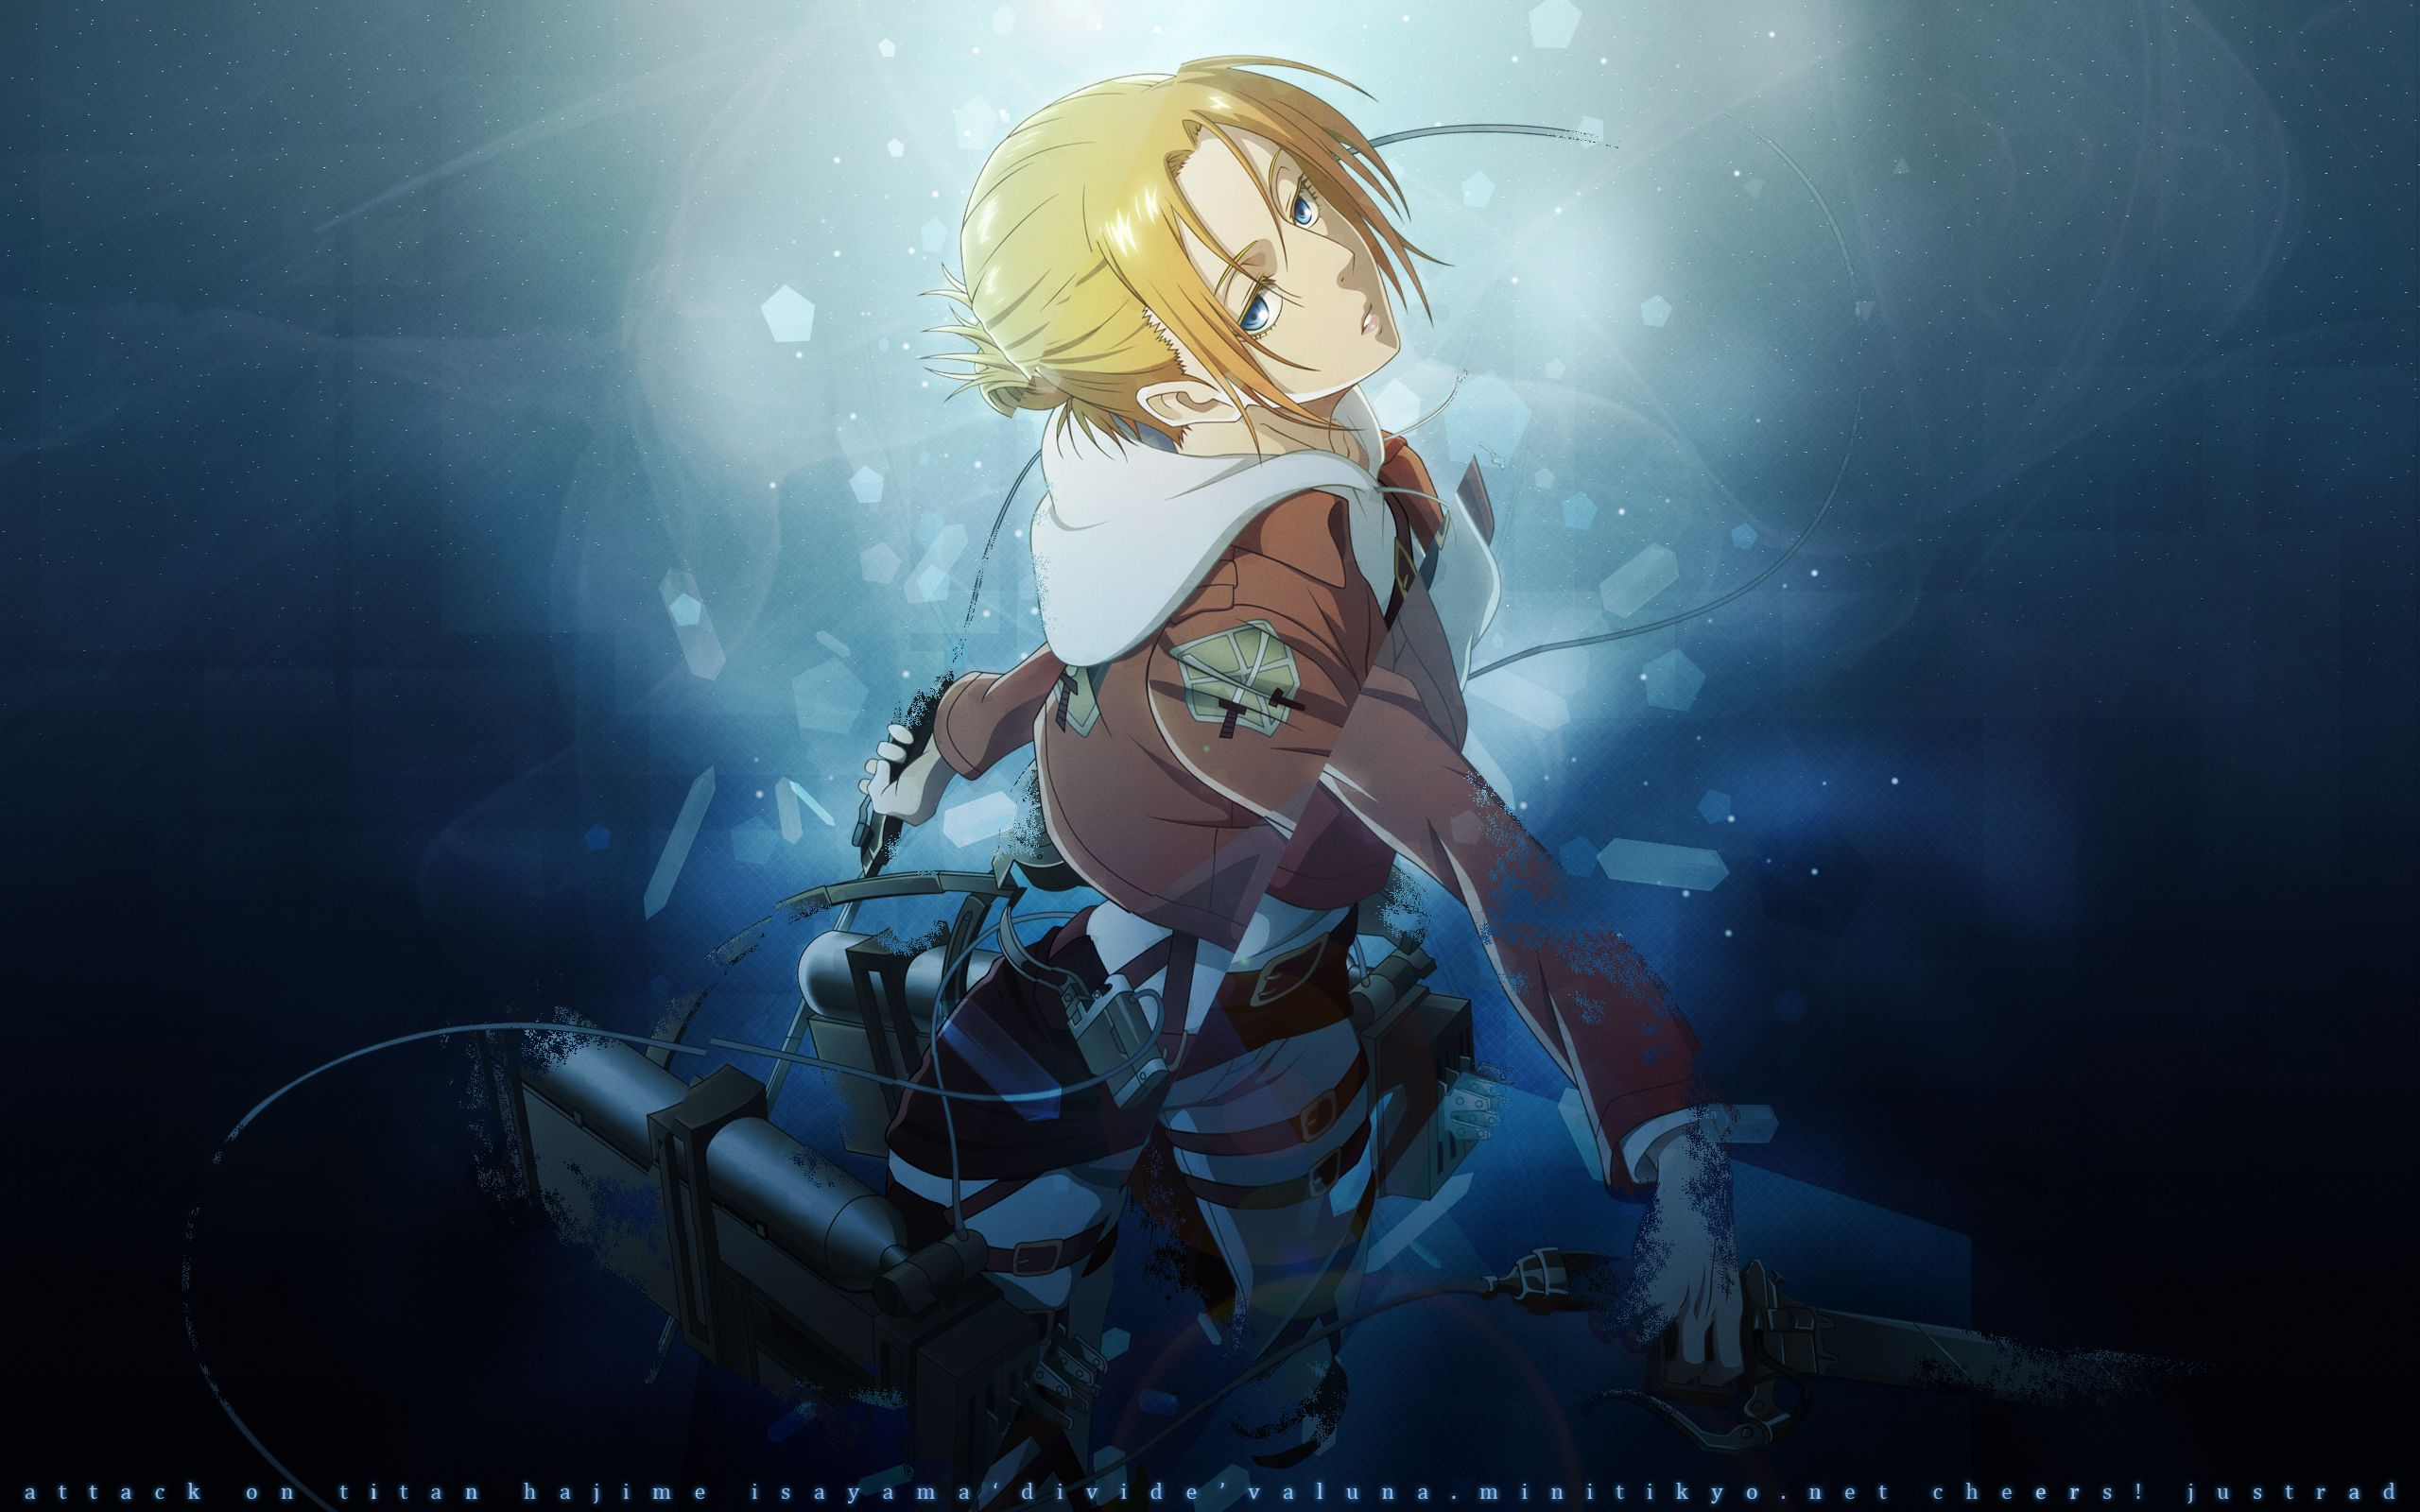 Annie Attack On Titan Wallpapers Top Free Annie Attack On Titan Backgrounds Wallpaperaccess